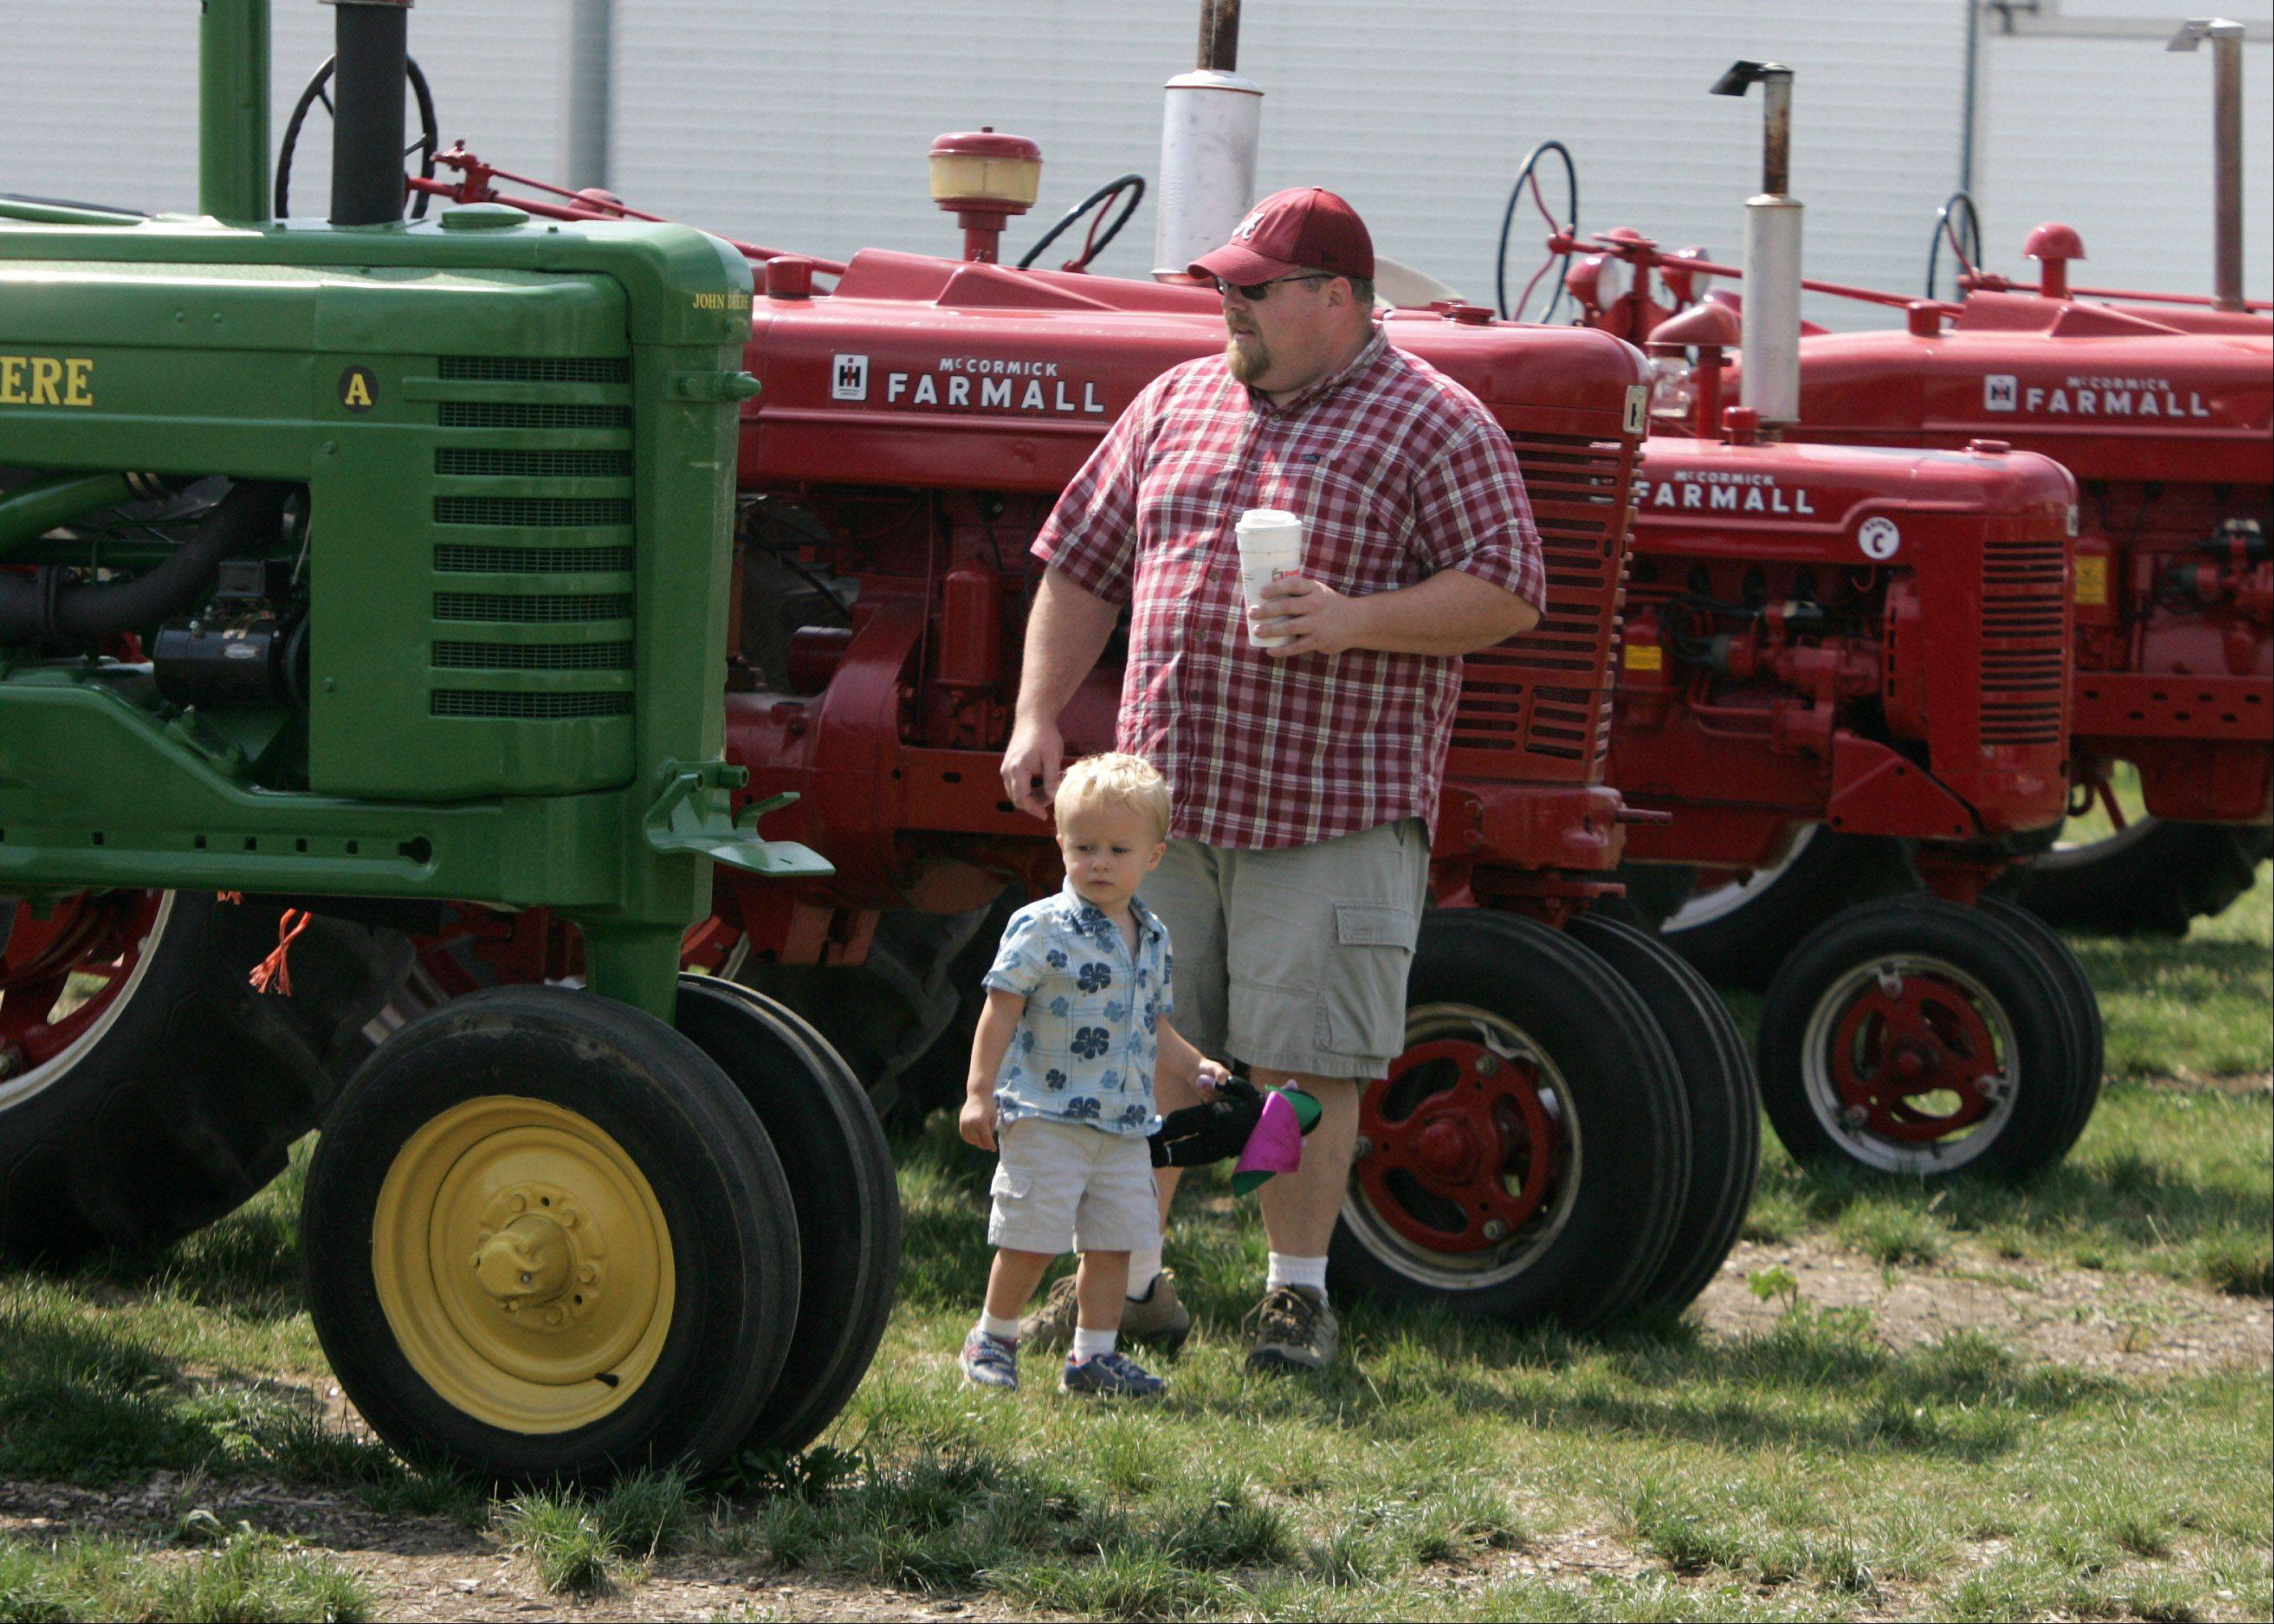 David Martin of McHenry and his son, Isaac, 2, look at tractors at the Lake County Farm Heritage Association Inc. exhibit during last day of the 84th Annual Lake County Fair Sunday in Grayslake. Fair organizers say attendance was up this year for the first time since moving to a new fairgrounds in 2009.